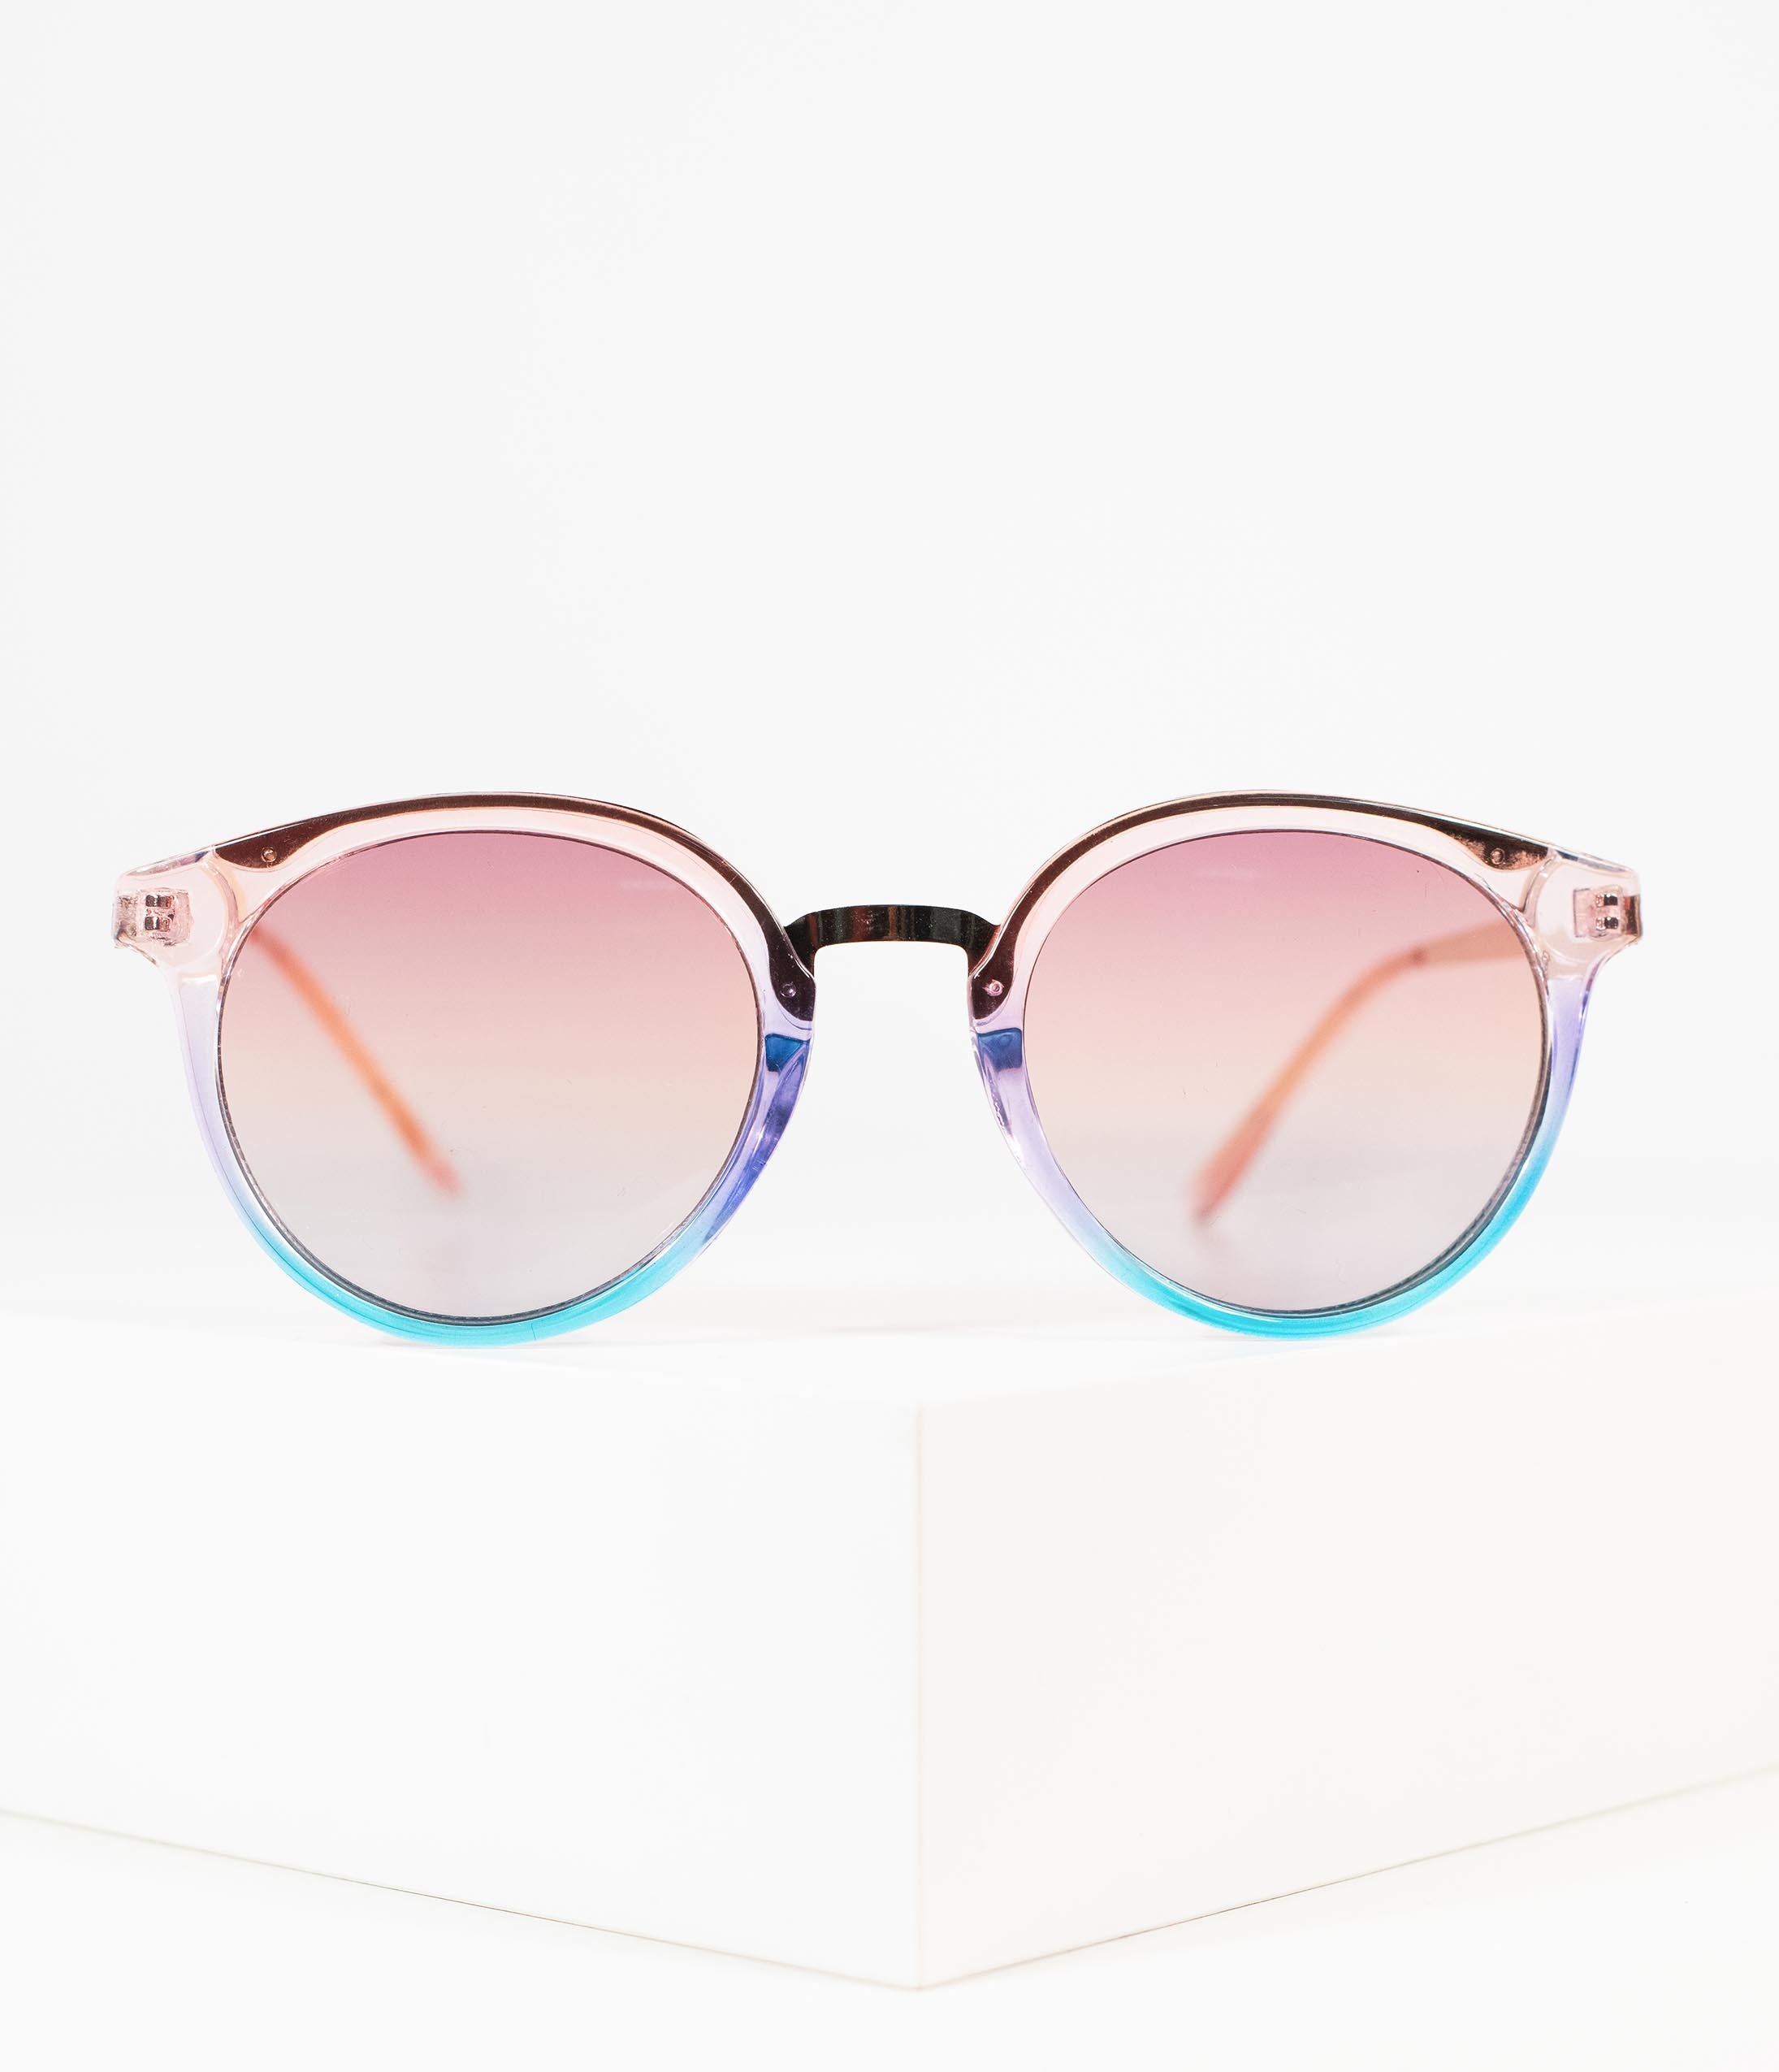 5680bd27b6950 1970s Style Pink   Blue Rounded Crystal Metal Sunglasses